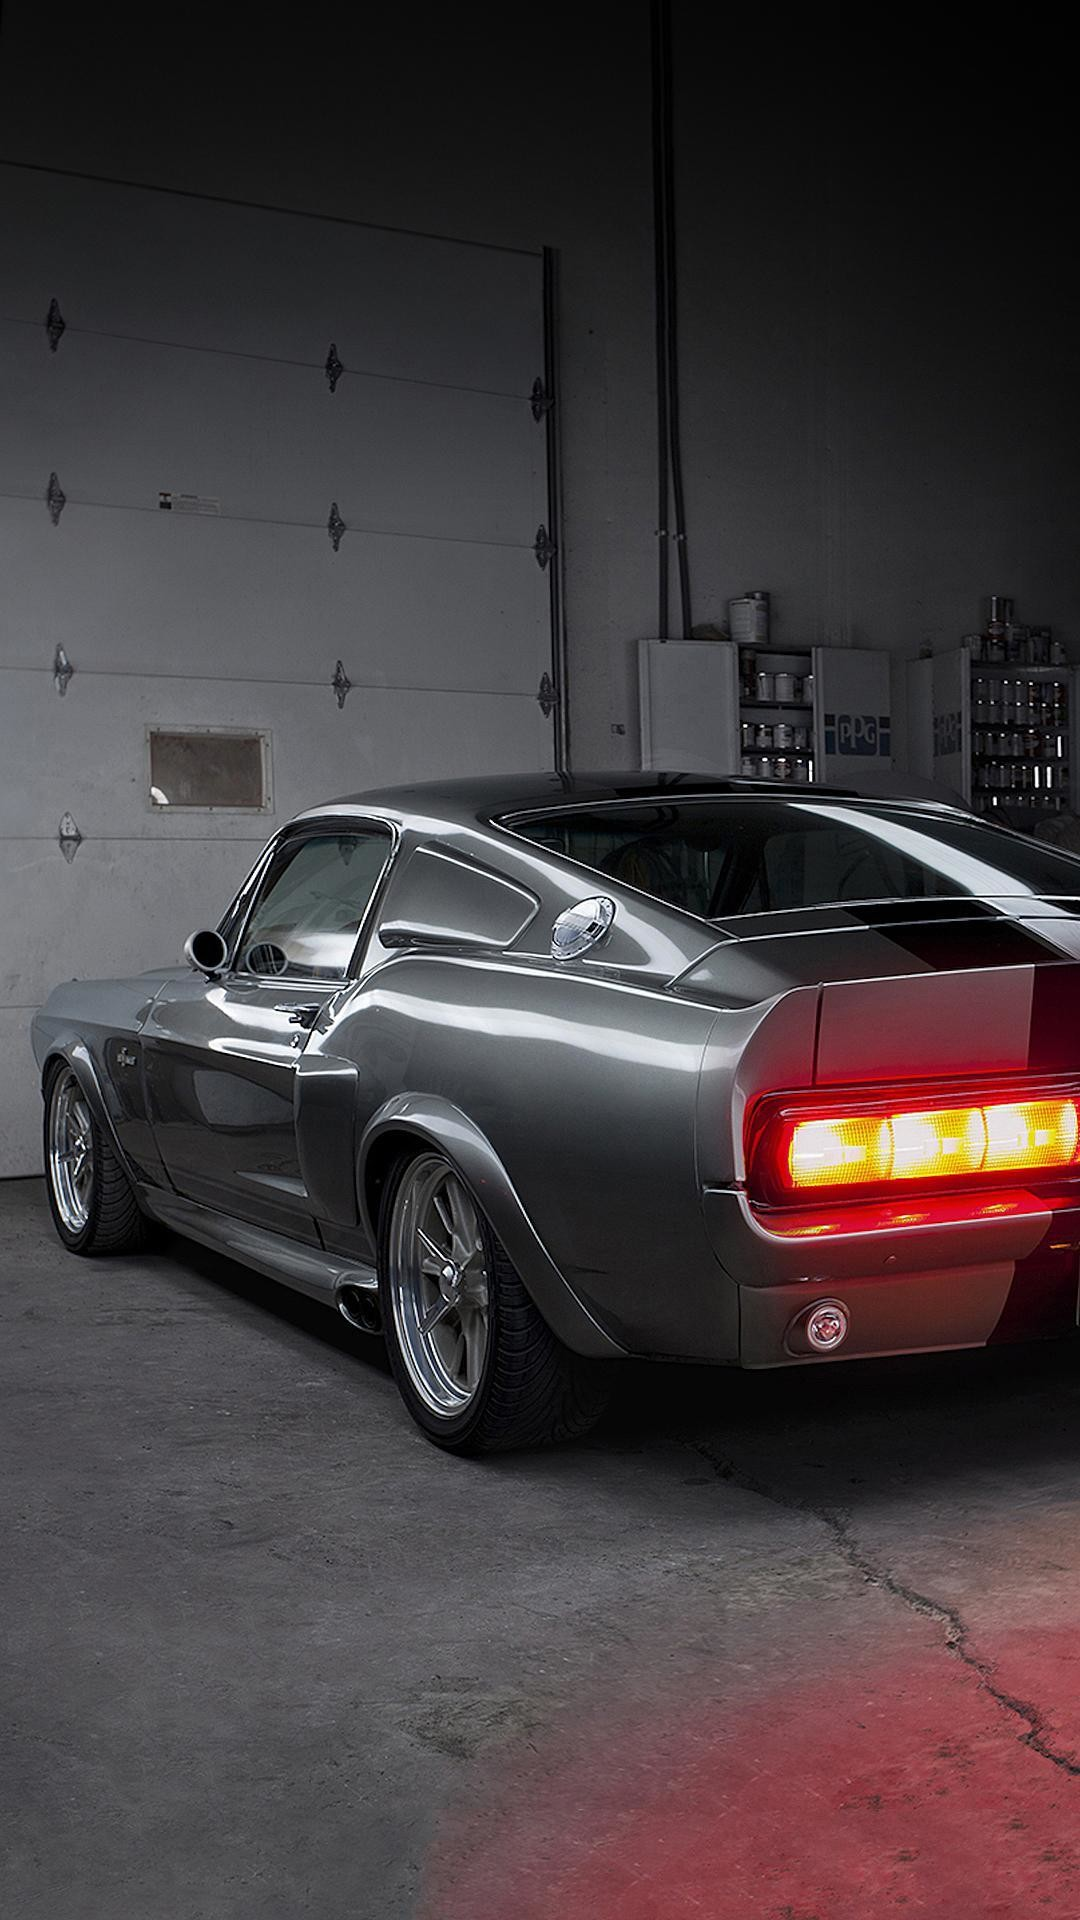 1080x1920 American Muscle Car Wallpaper Iphone Photos Hd Of Androids Current Classic  Plus Mustang